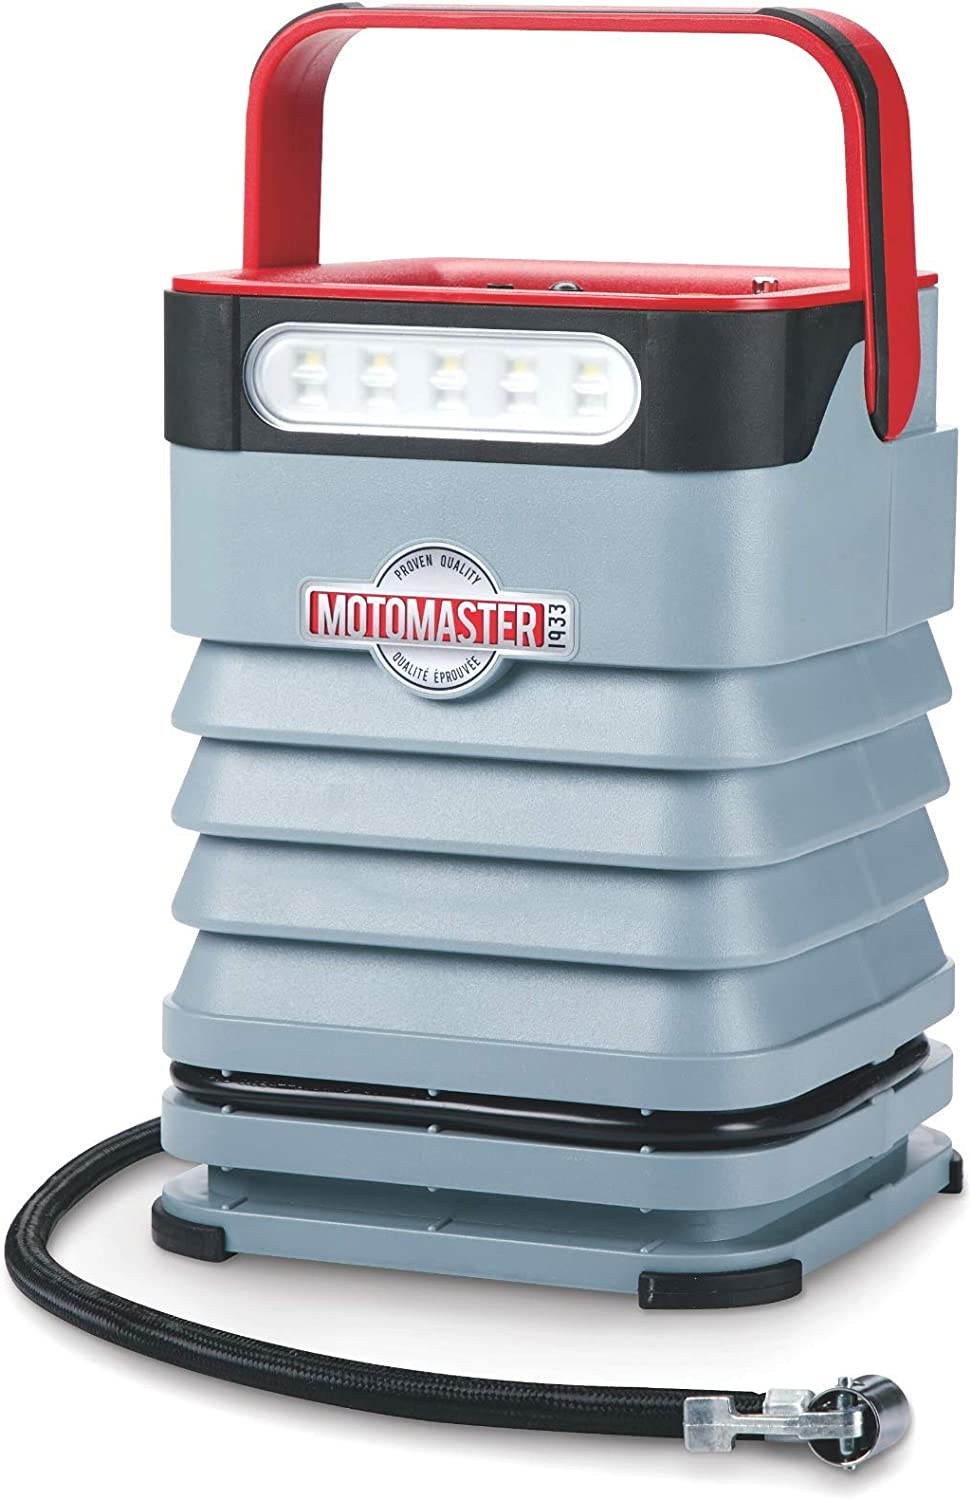 Max 90% OFF MOTOMASTER New Free Shipping Portable Air Inflator-Compressor Dual Motor 120PSI